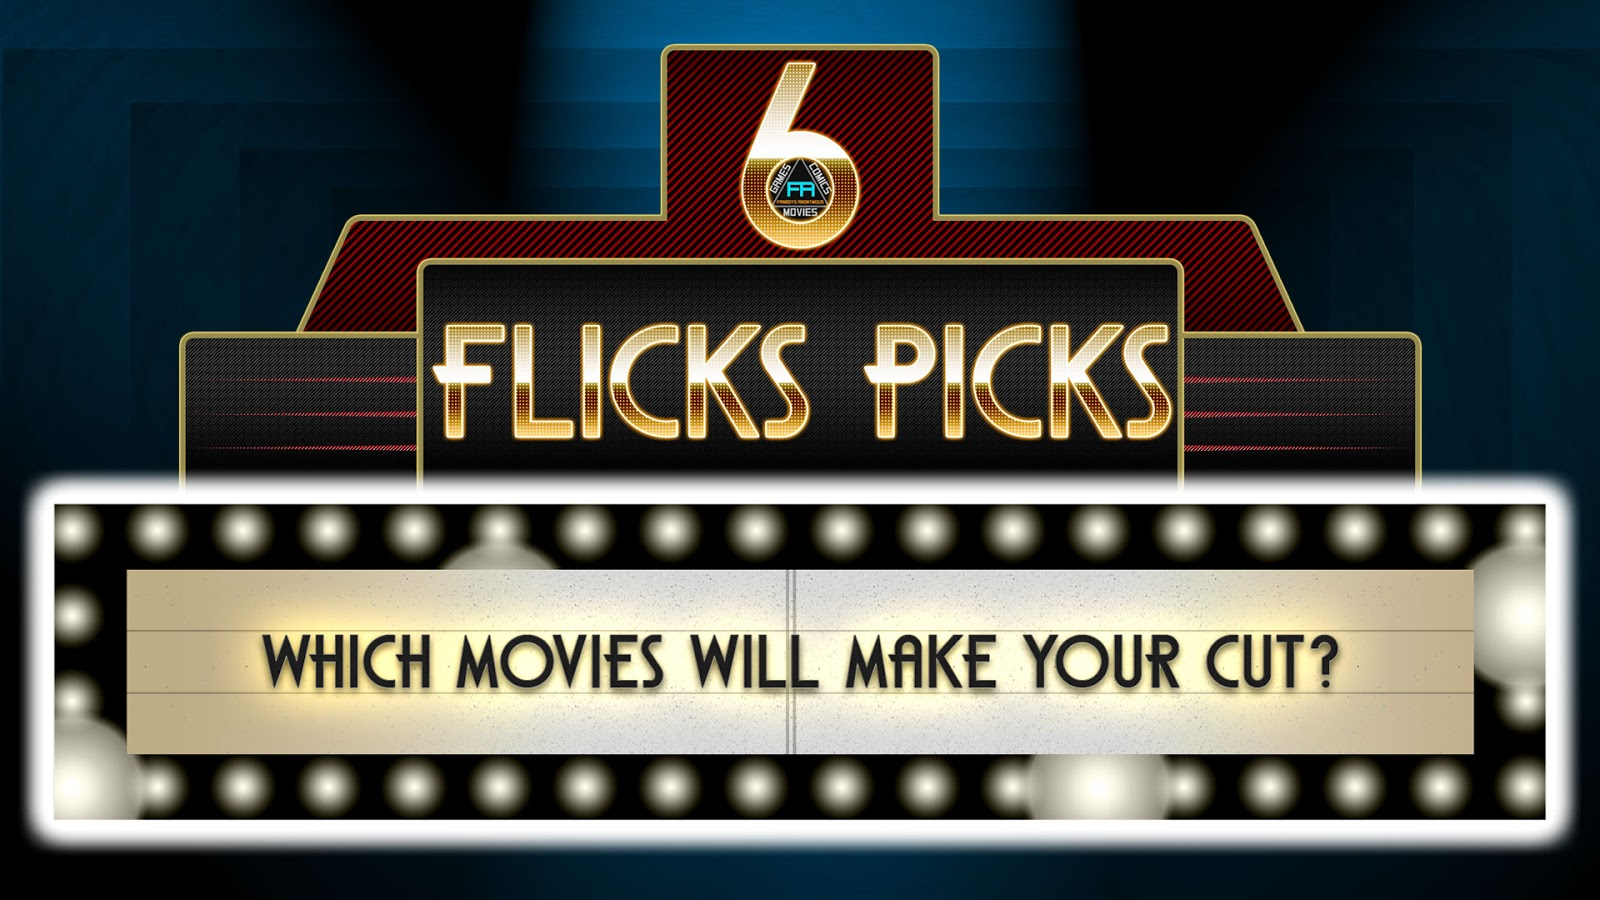 What movies are coming out February 2018 6 Flicks Picks